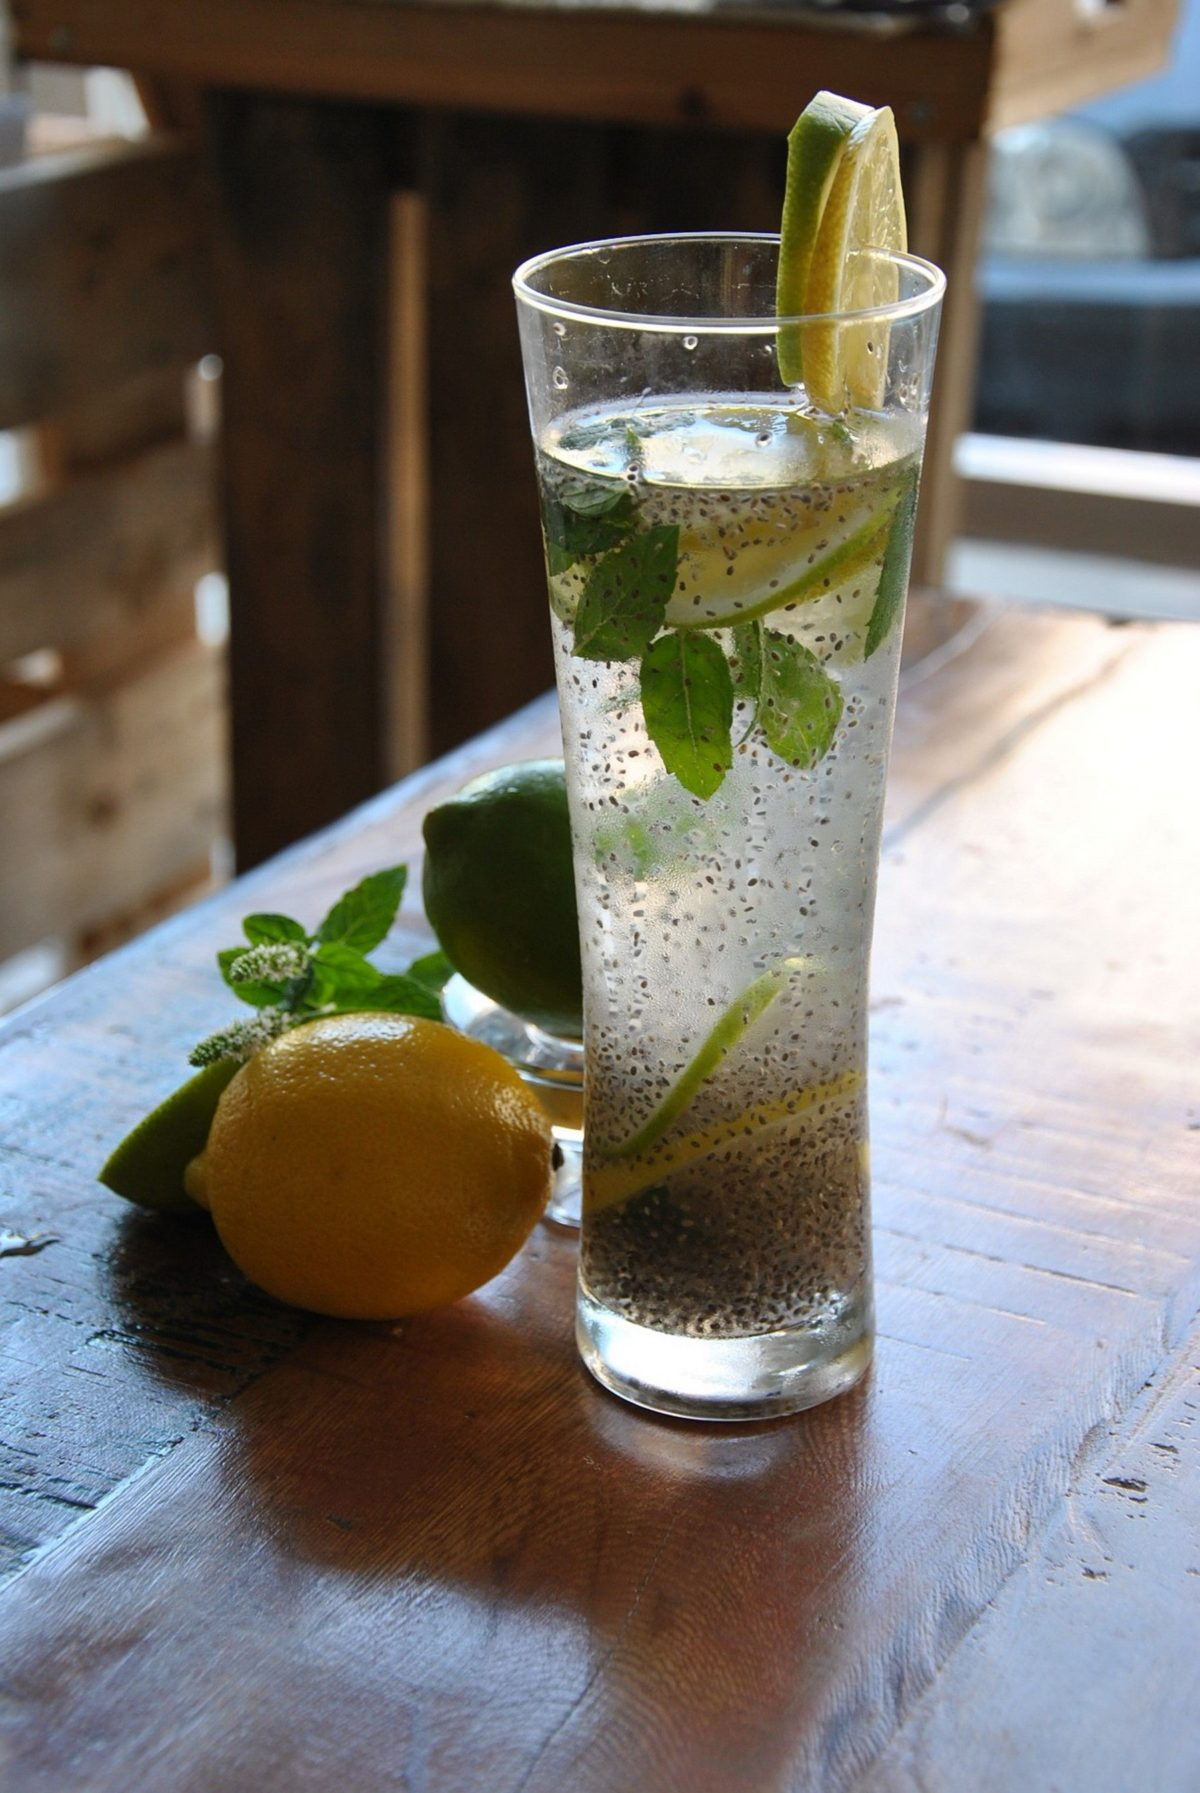 chia lemon water benefits for health and weight loss